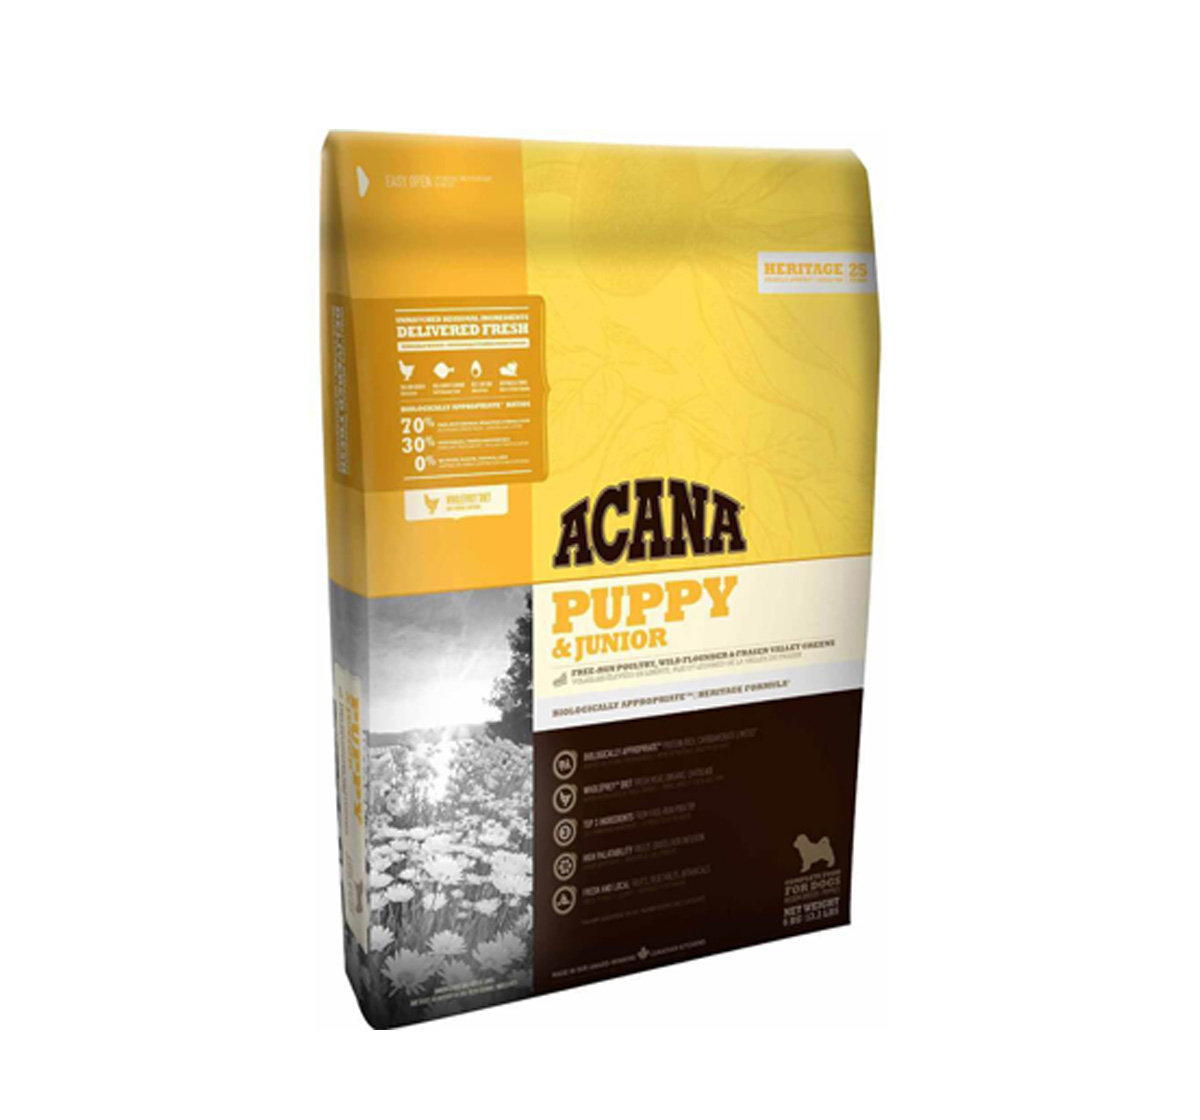 Acana Puppy & Junior Food - 6 Kg